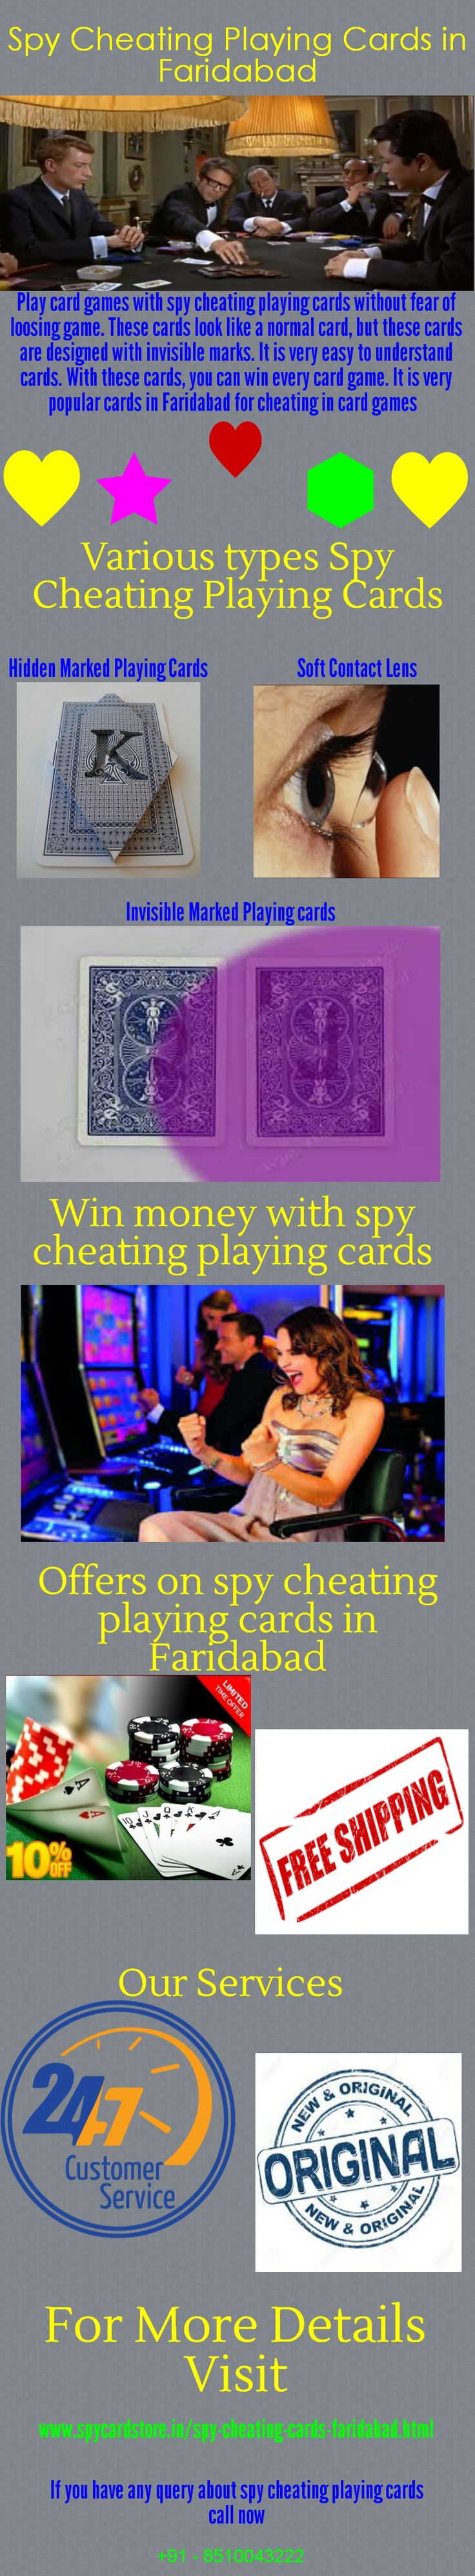 We offer spy cheating playing cards in Faridabad with 1 year replacement guarantee. Our customer support service available for 24*7 days. The spy cheating cards are most popular product. These cards look like normal playing cards, but some special marks and numbers print on back of the cards. Easy to use. It is long lasting cards. It is made by best quality papers which is wrinkle free. To Know More: - http://www.spycardstore.in/spy-cheating-cards-faridabad.htm